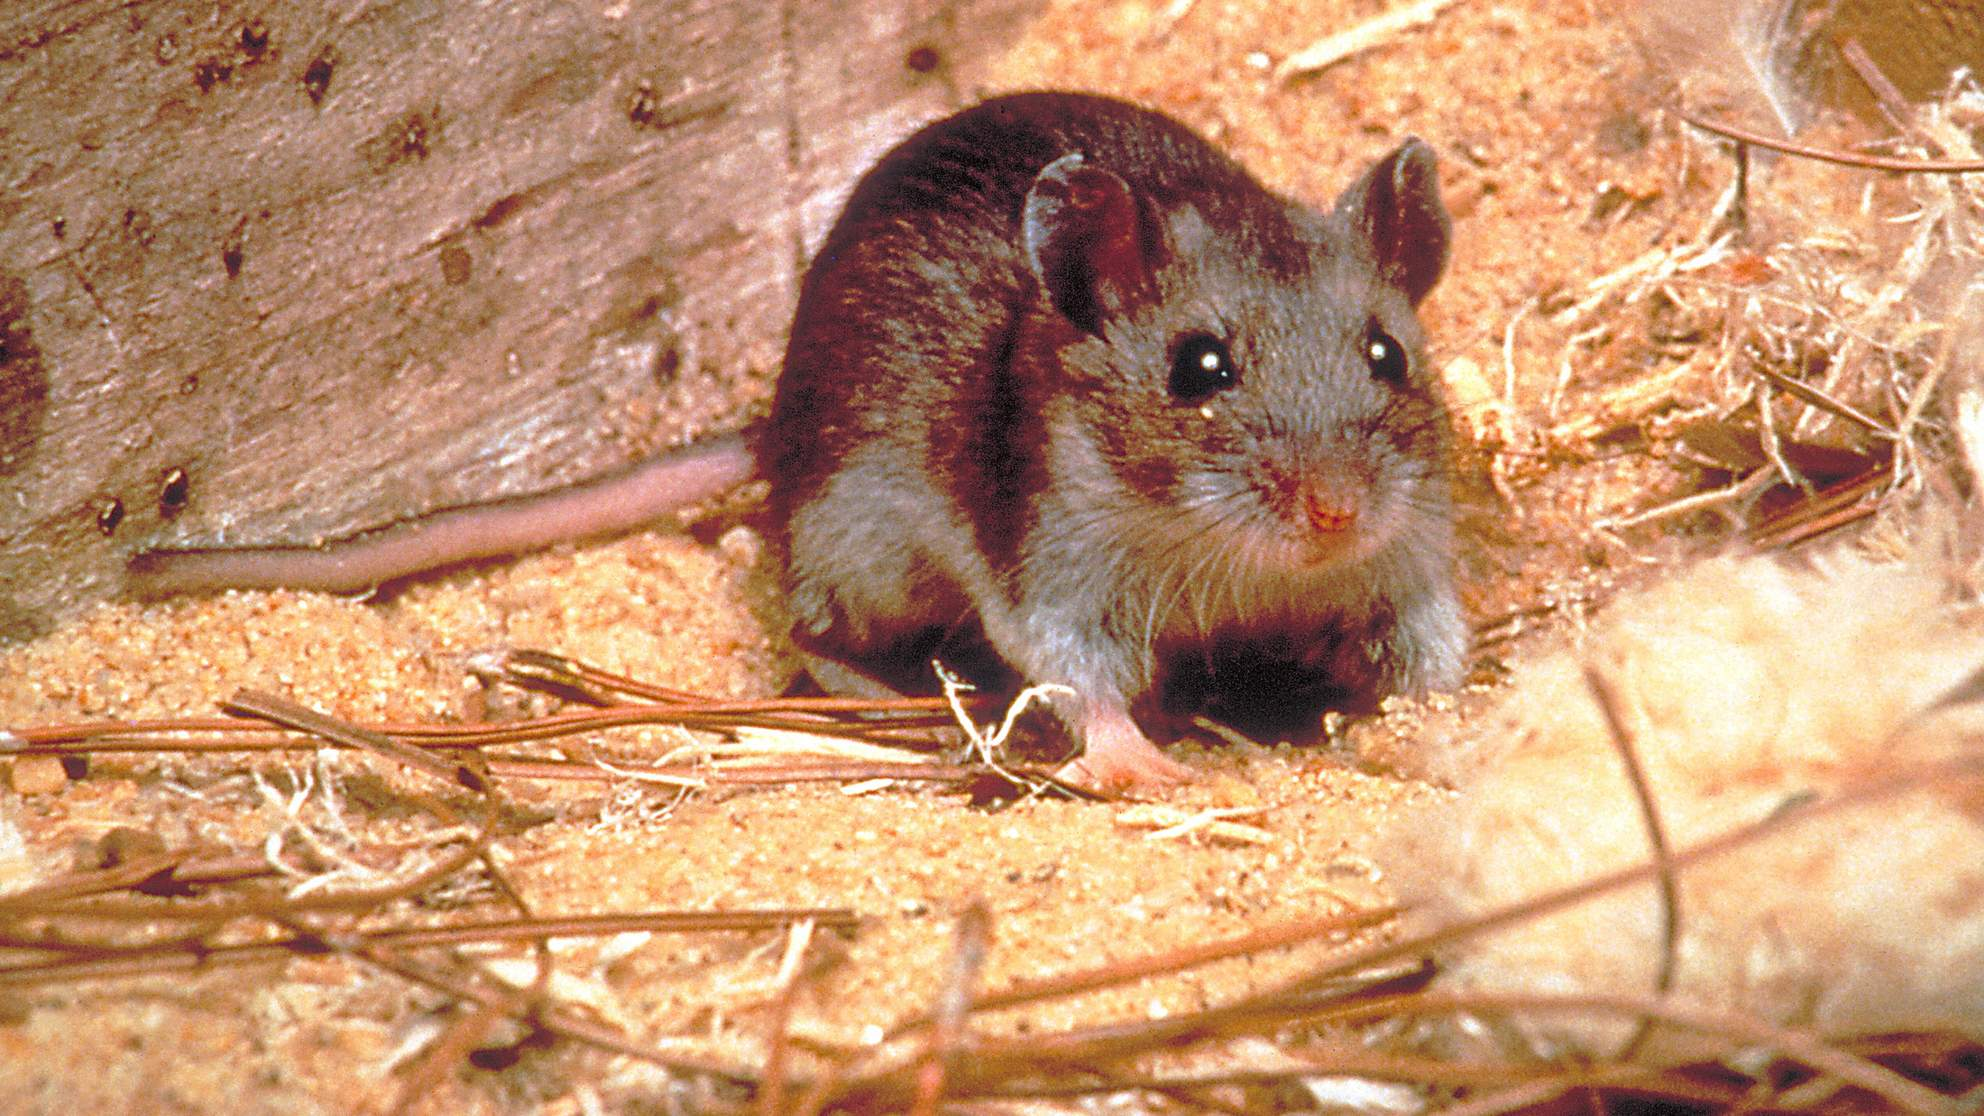 hantavirus-symptoms-prevention-treatment